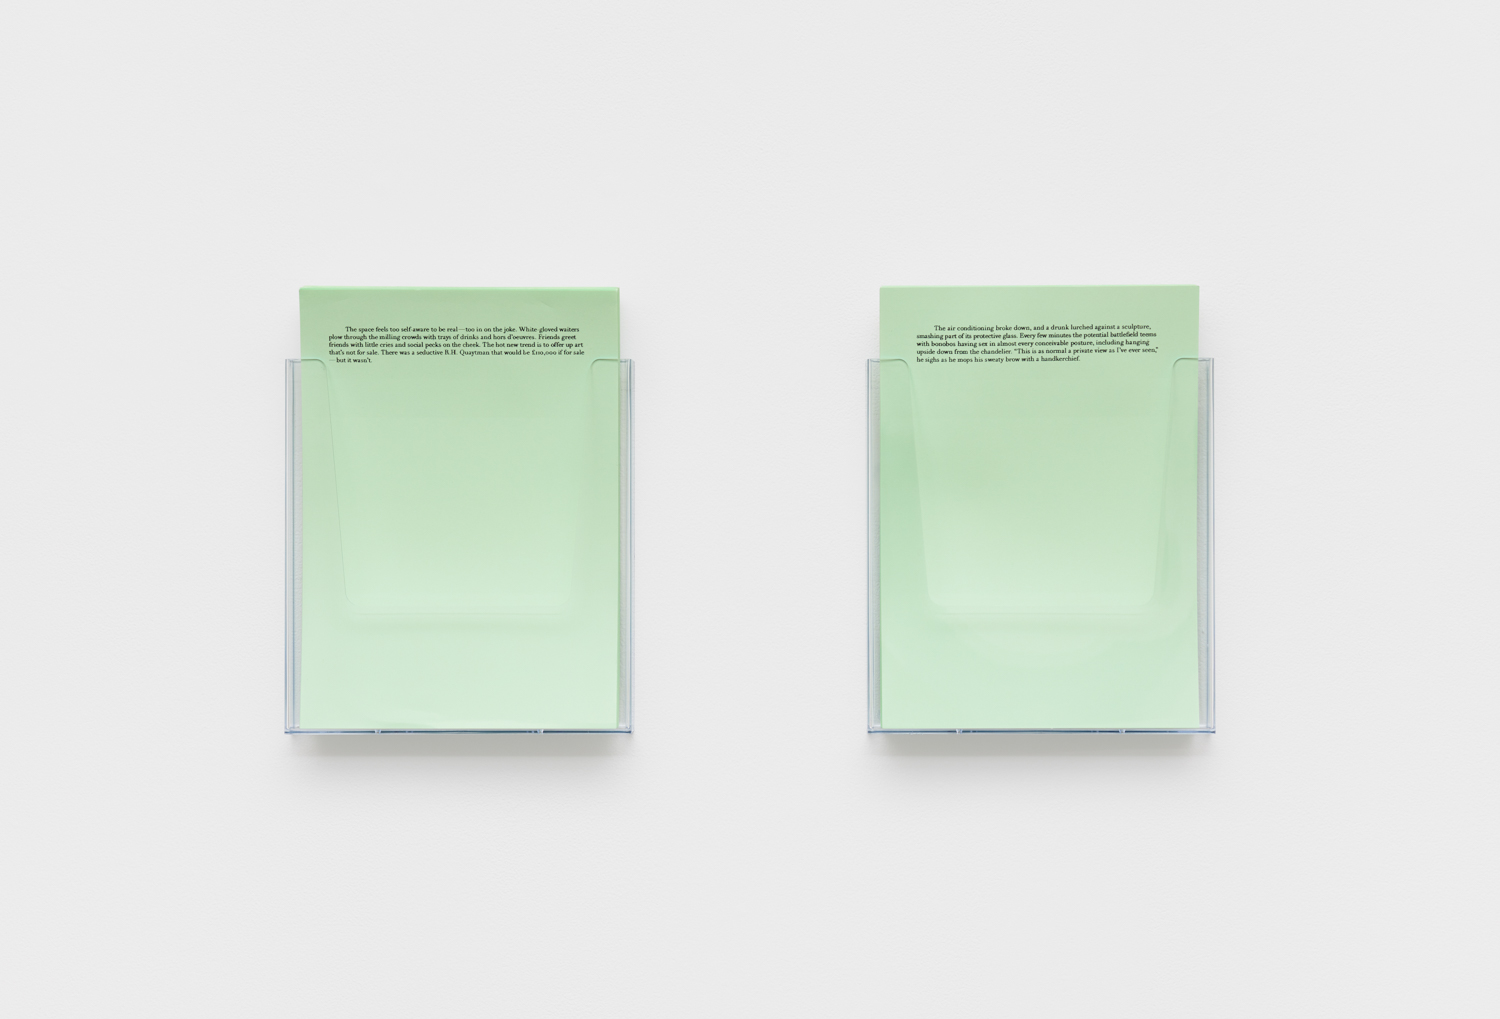 Bonobos , 2018 prose montage on coloured paper, Perspex holders 11 3/16 x 33 27/32 in  (30 x 86 cm)